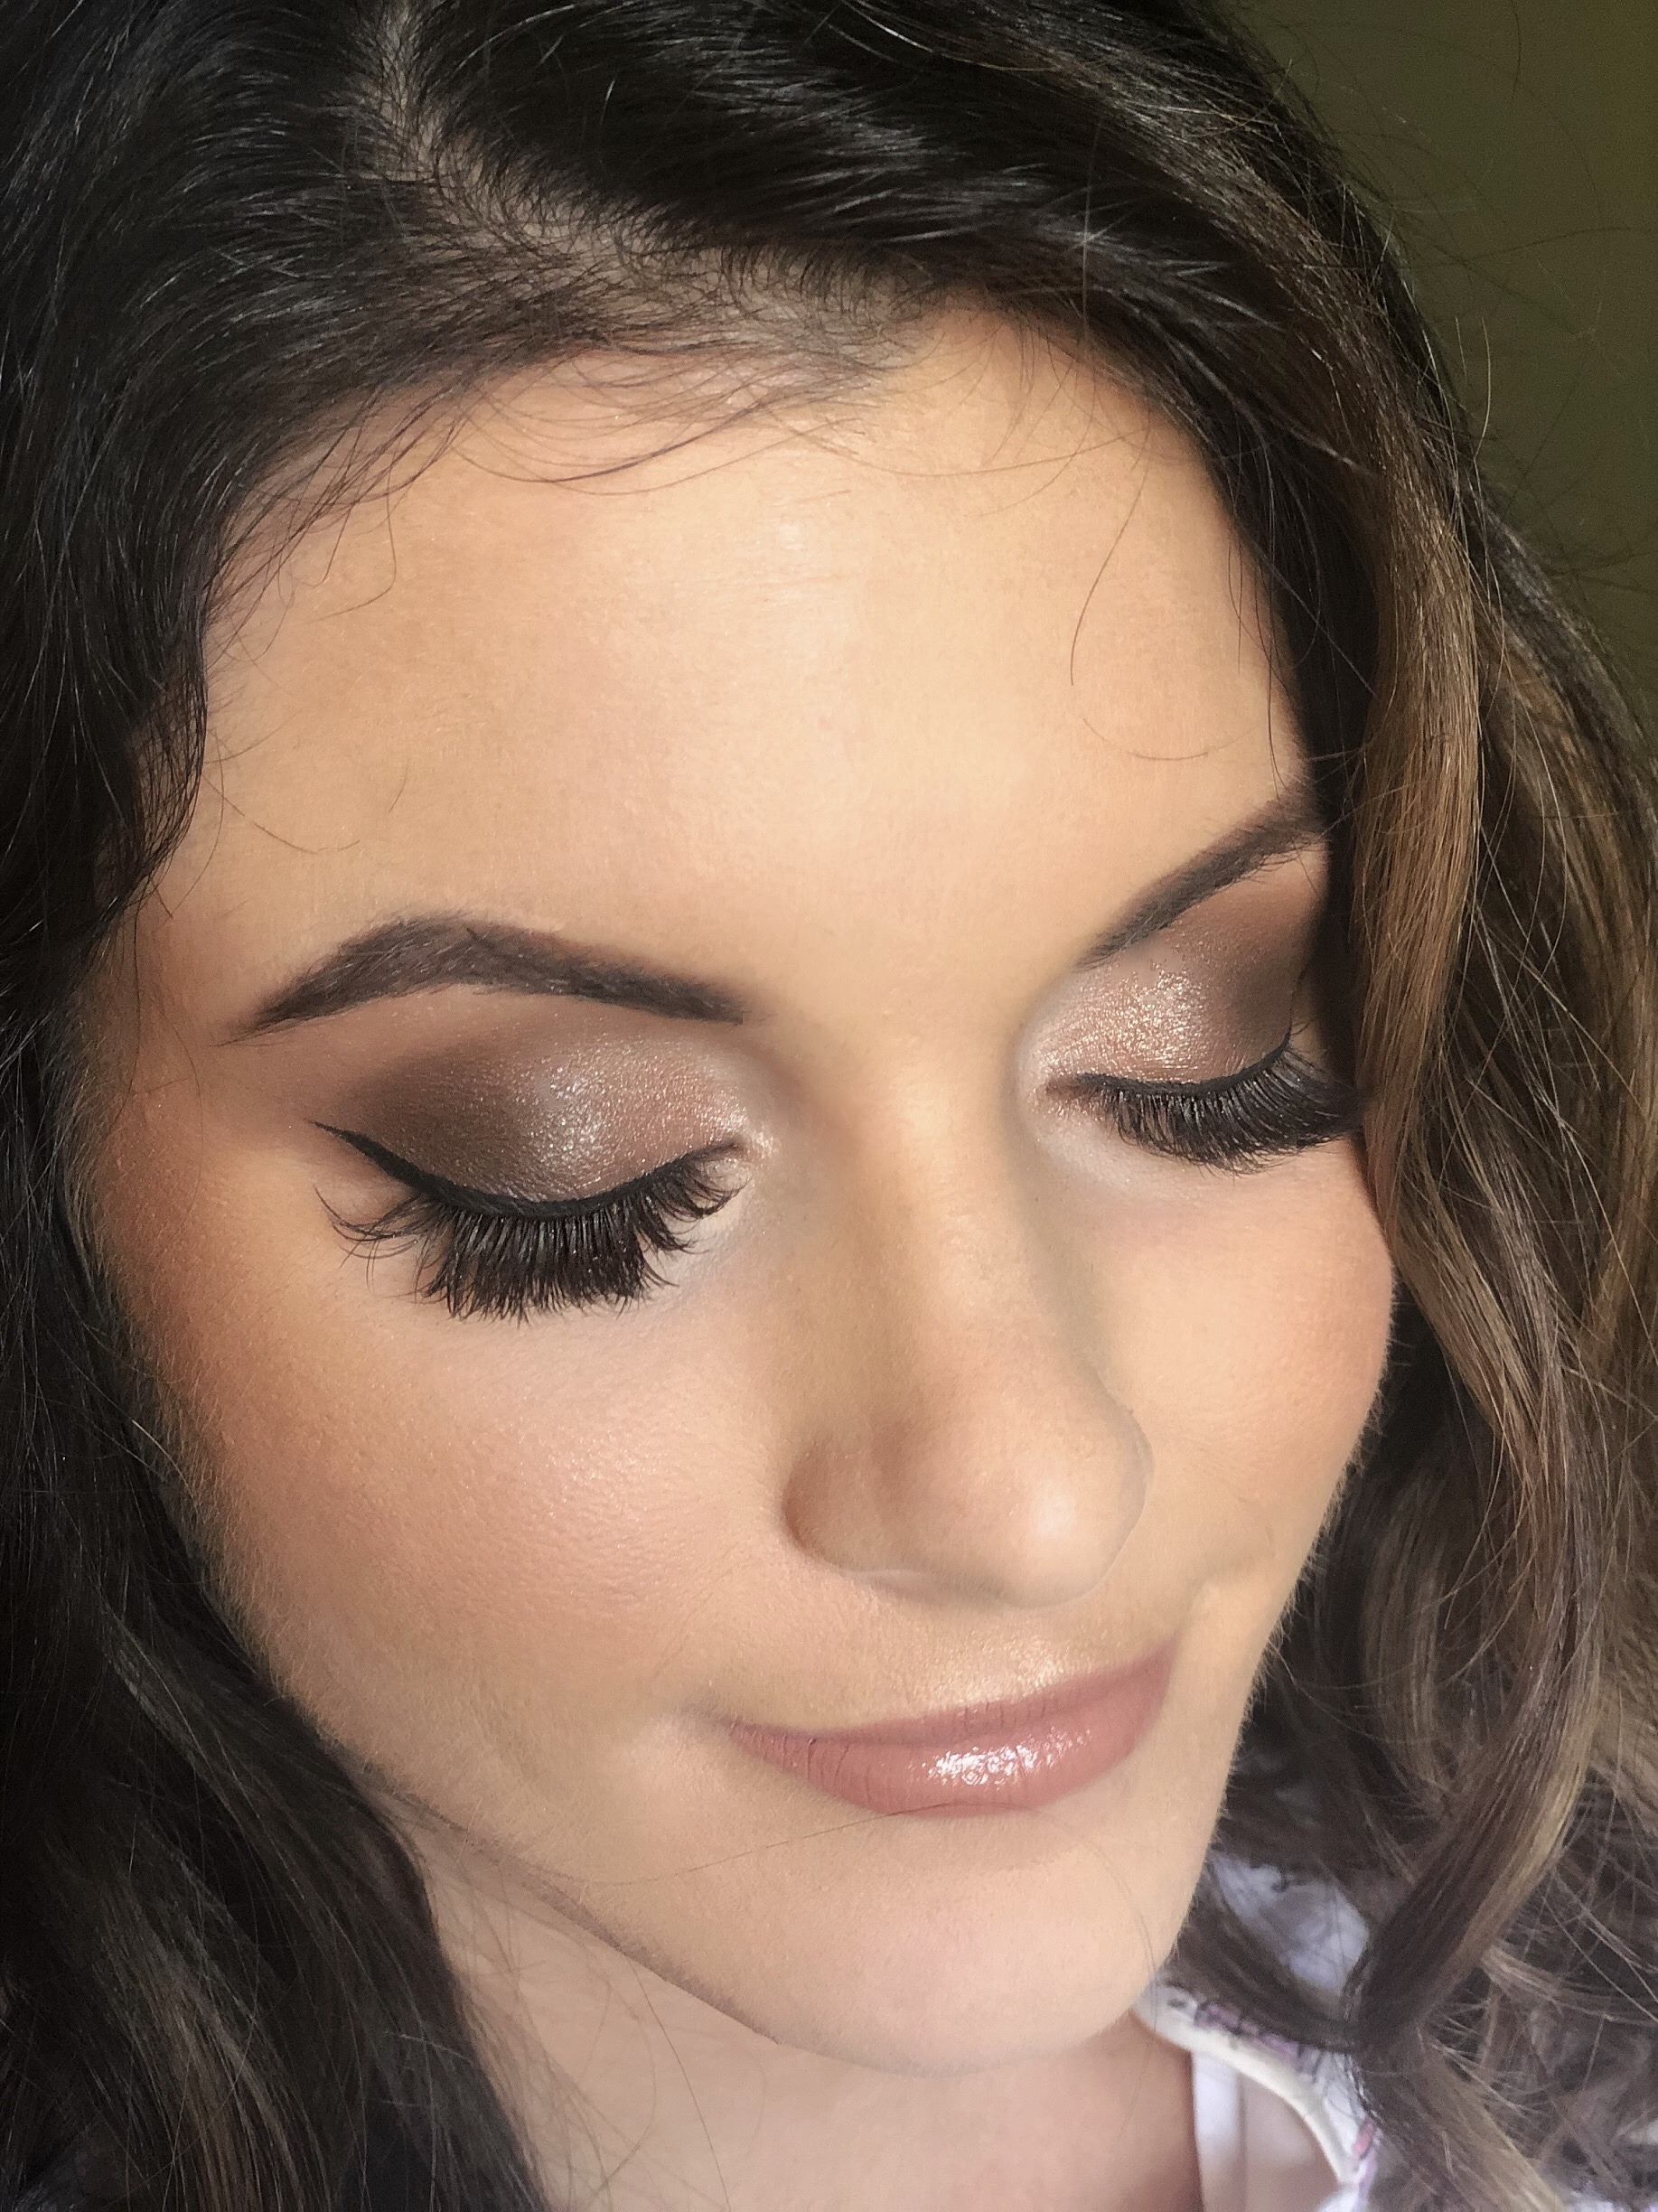 Makeup Only - Put your best face forward for any event! Beautiful skin that doesn't look cakey, eyes that pop, and lashes that wow, look like the most beautiful version of yourself.